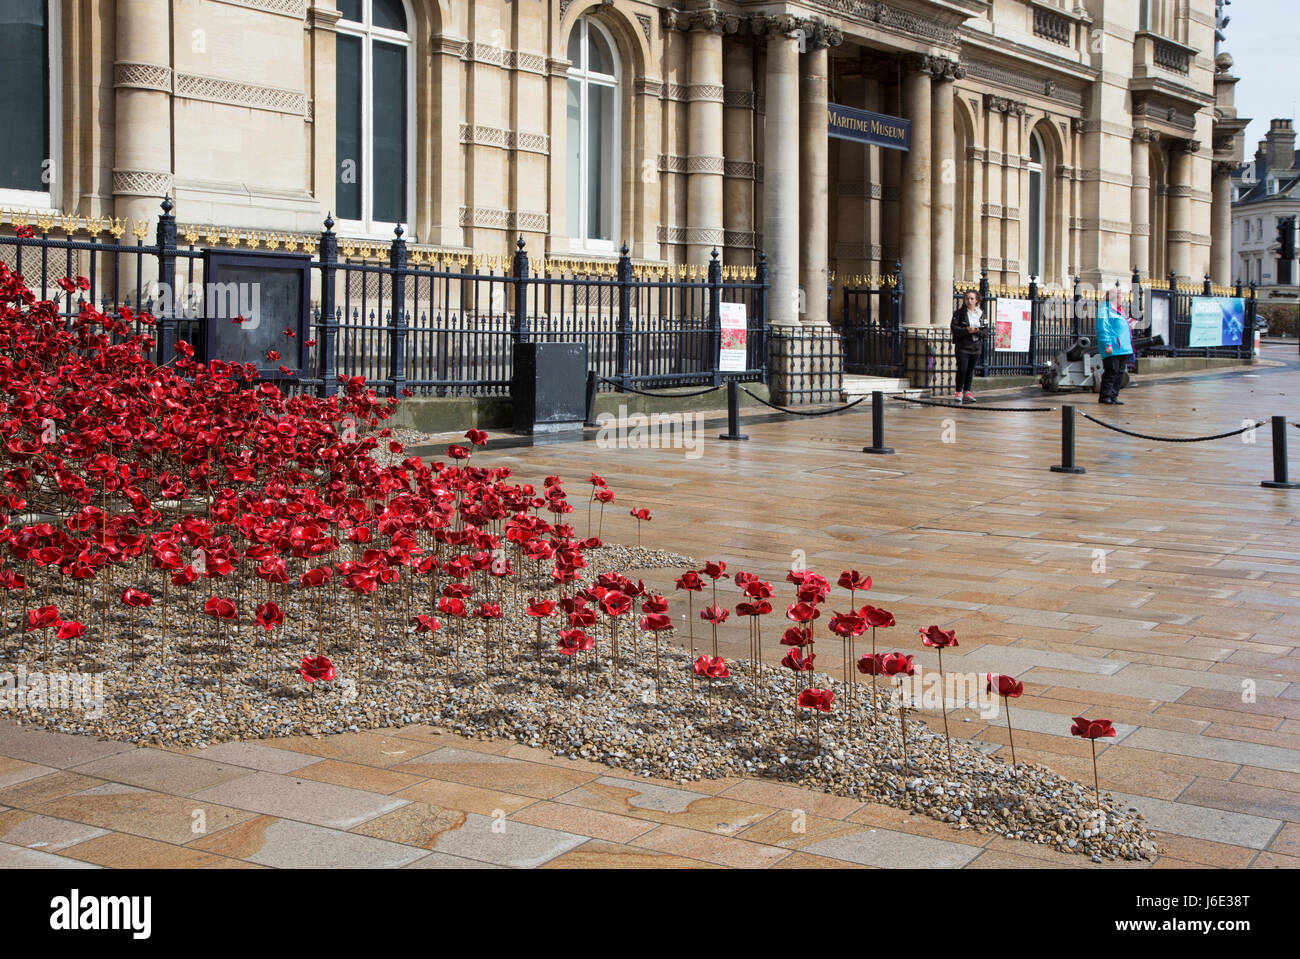 Poppies Weeping Window in Hull, photographed during the 2017 City of Culture year in Hull. Artist is Paul Cummins - Stock Image